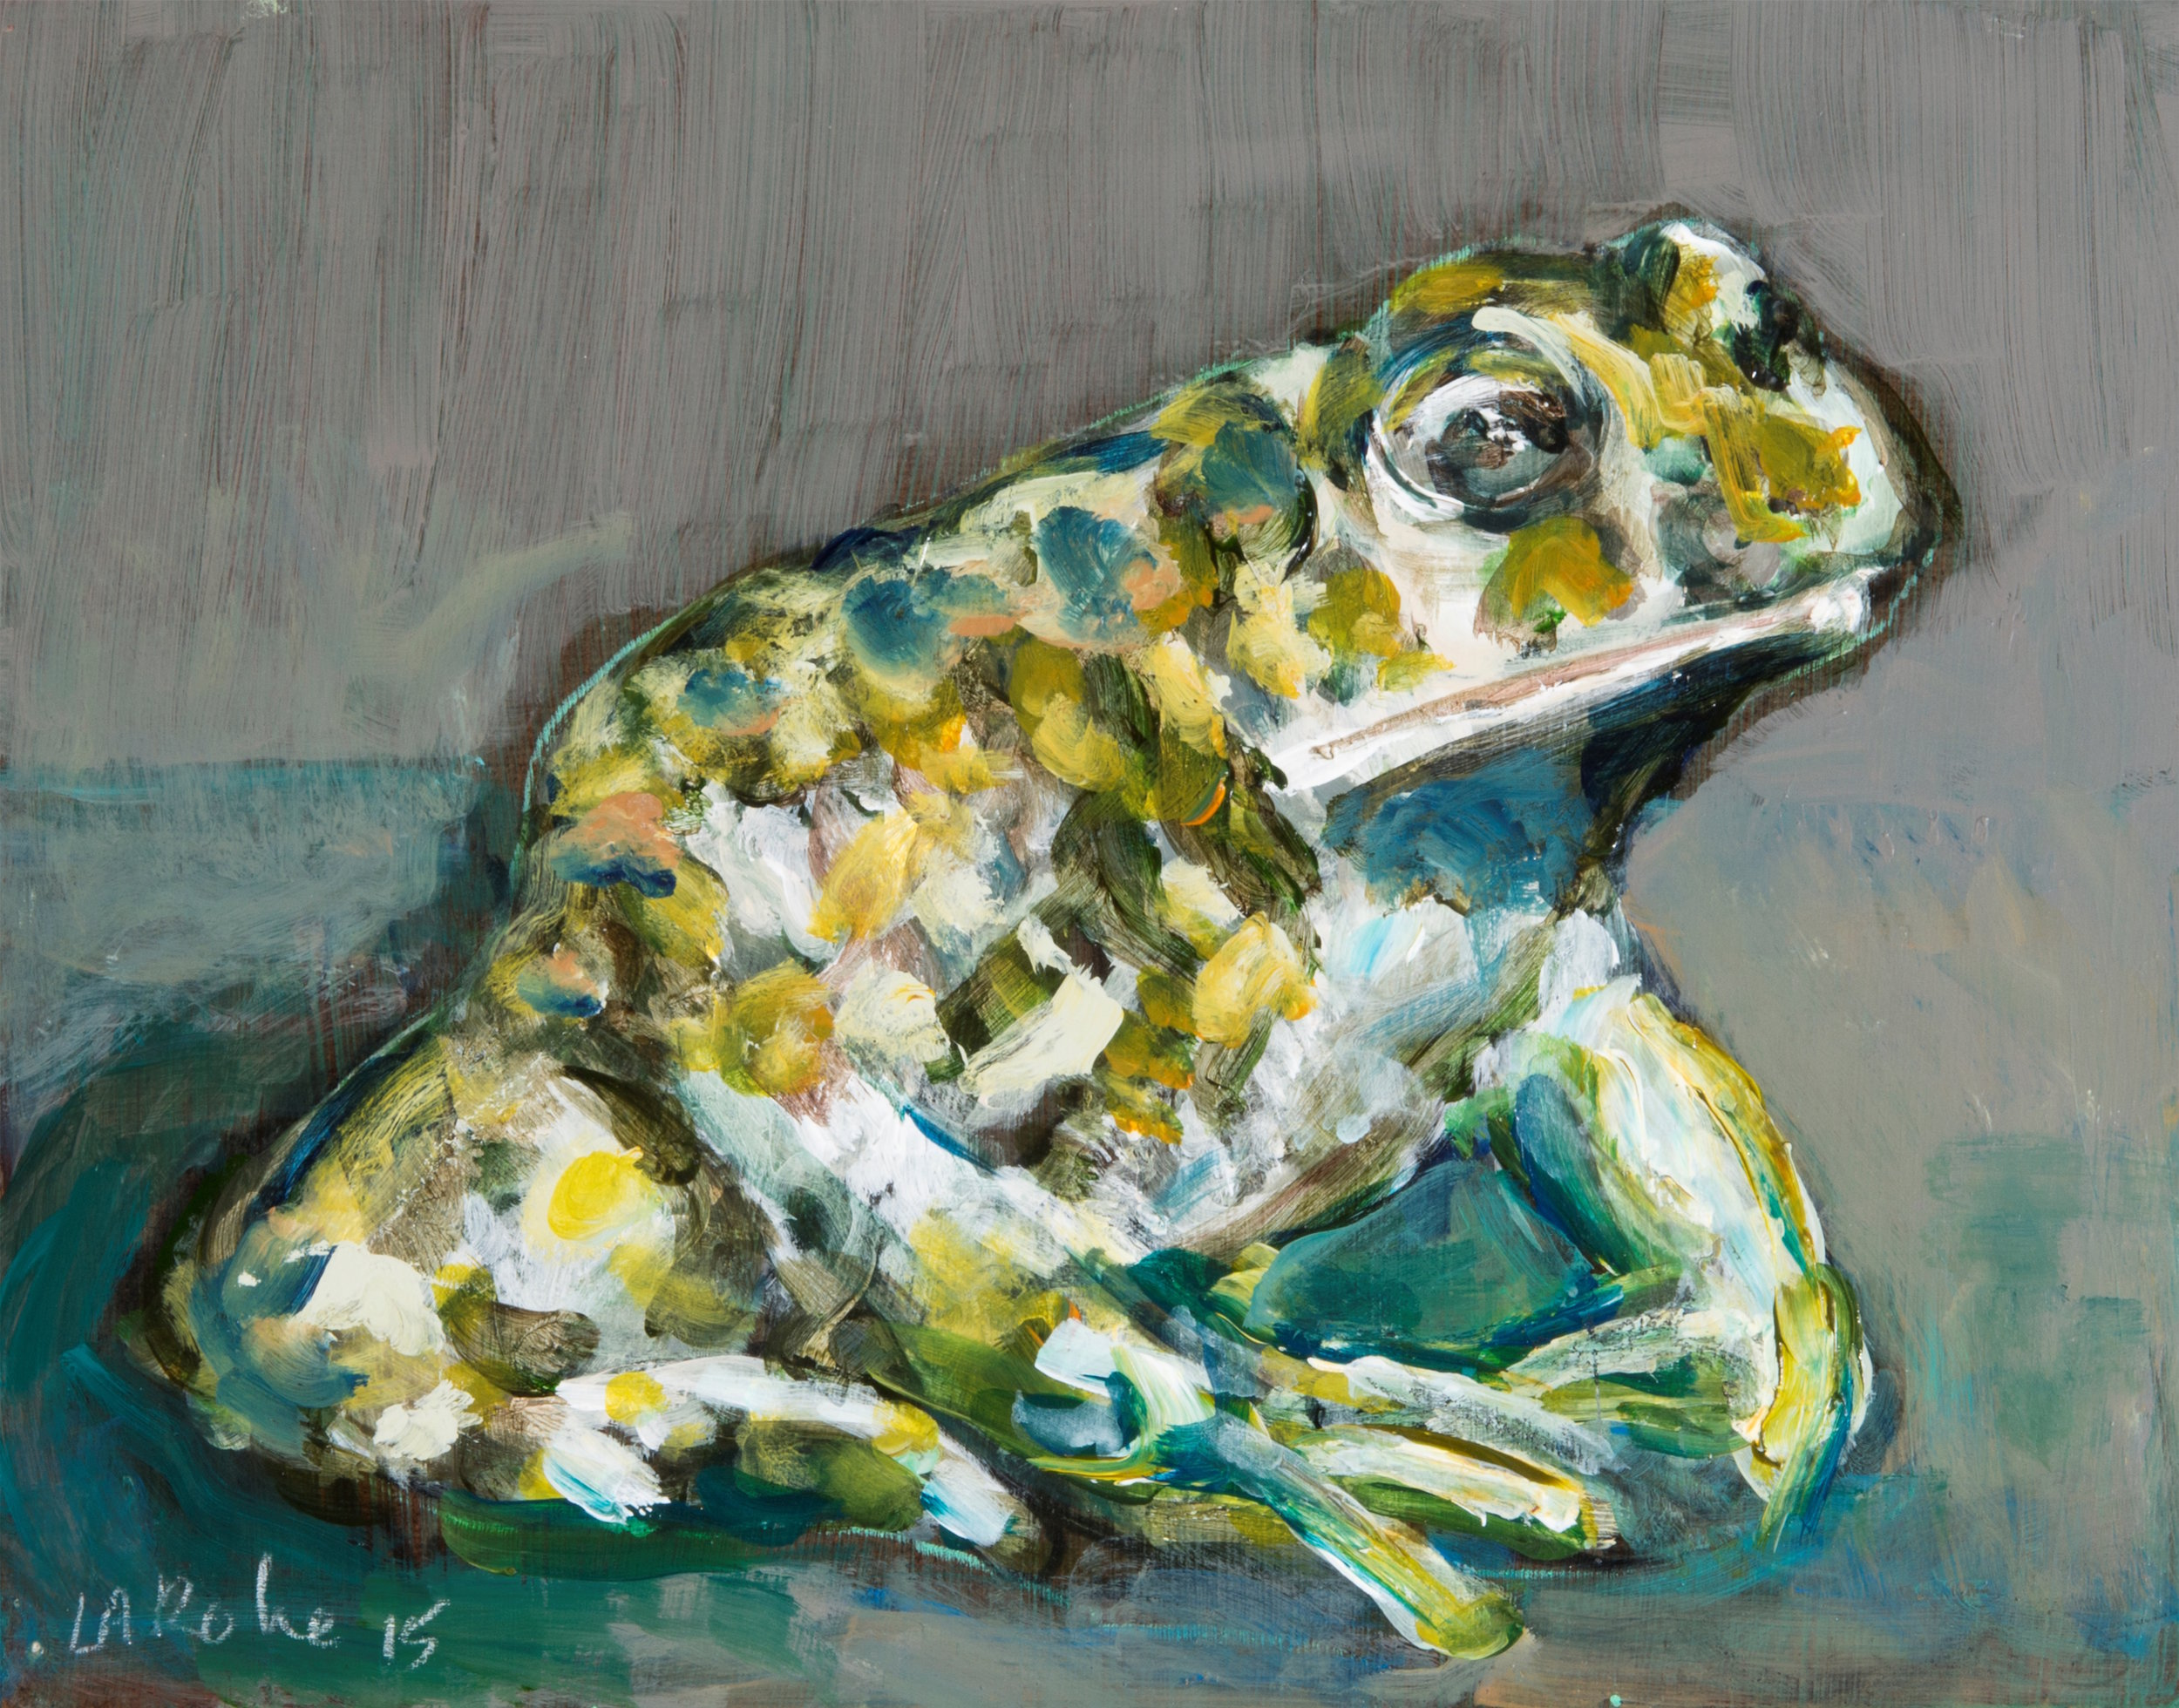 Prince Charming: I am not a frog  (ode to Aldwyth) III